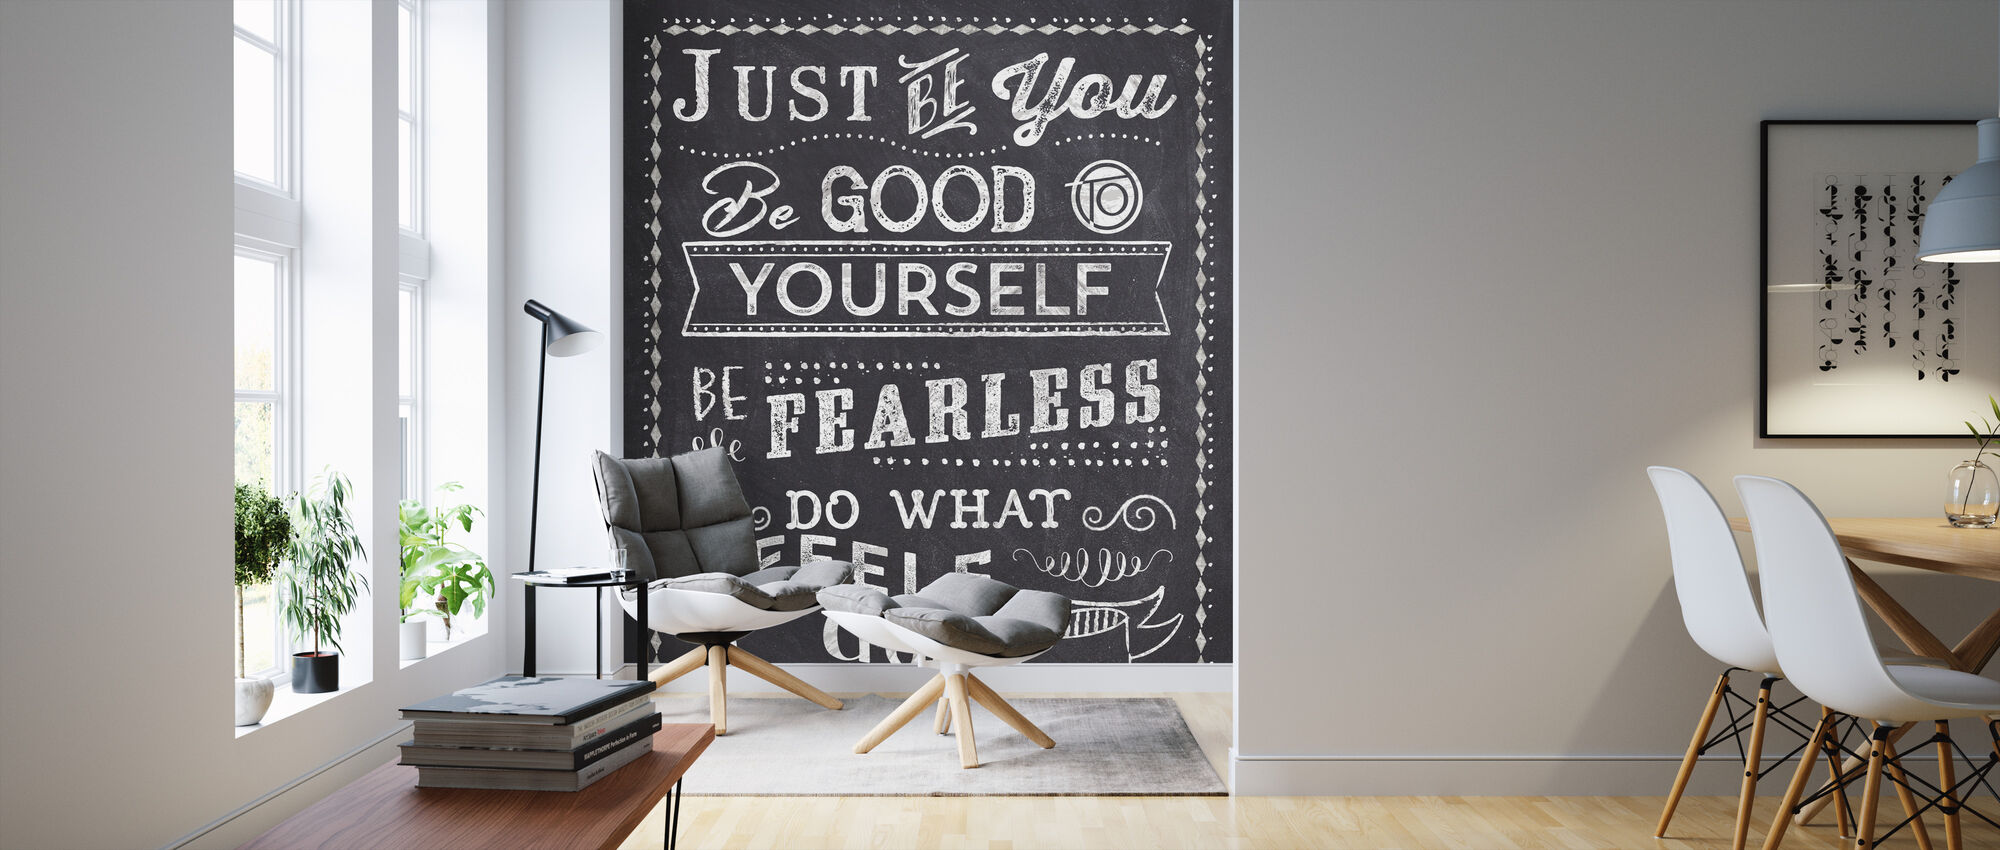 Just Be You II - Wallpaper - Living Room